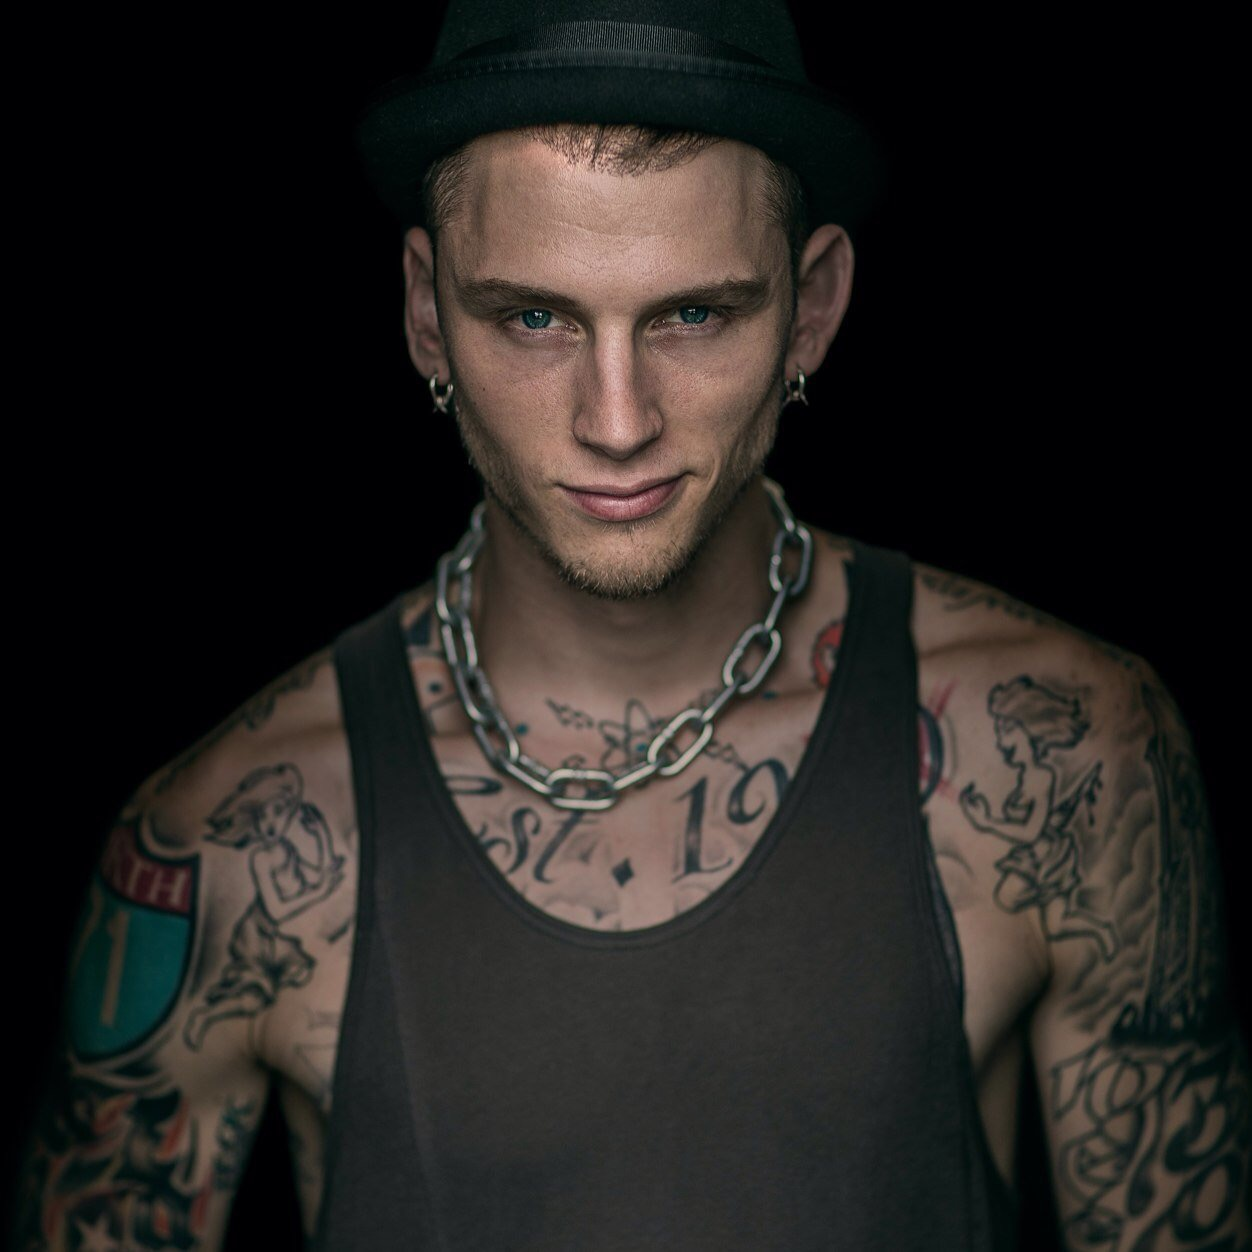 Machine Gun Kelly More Than A Man A Movement on trap rap radio